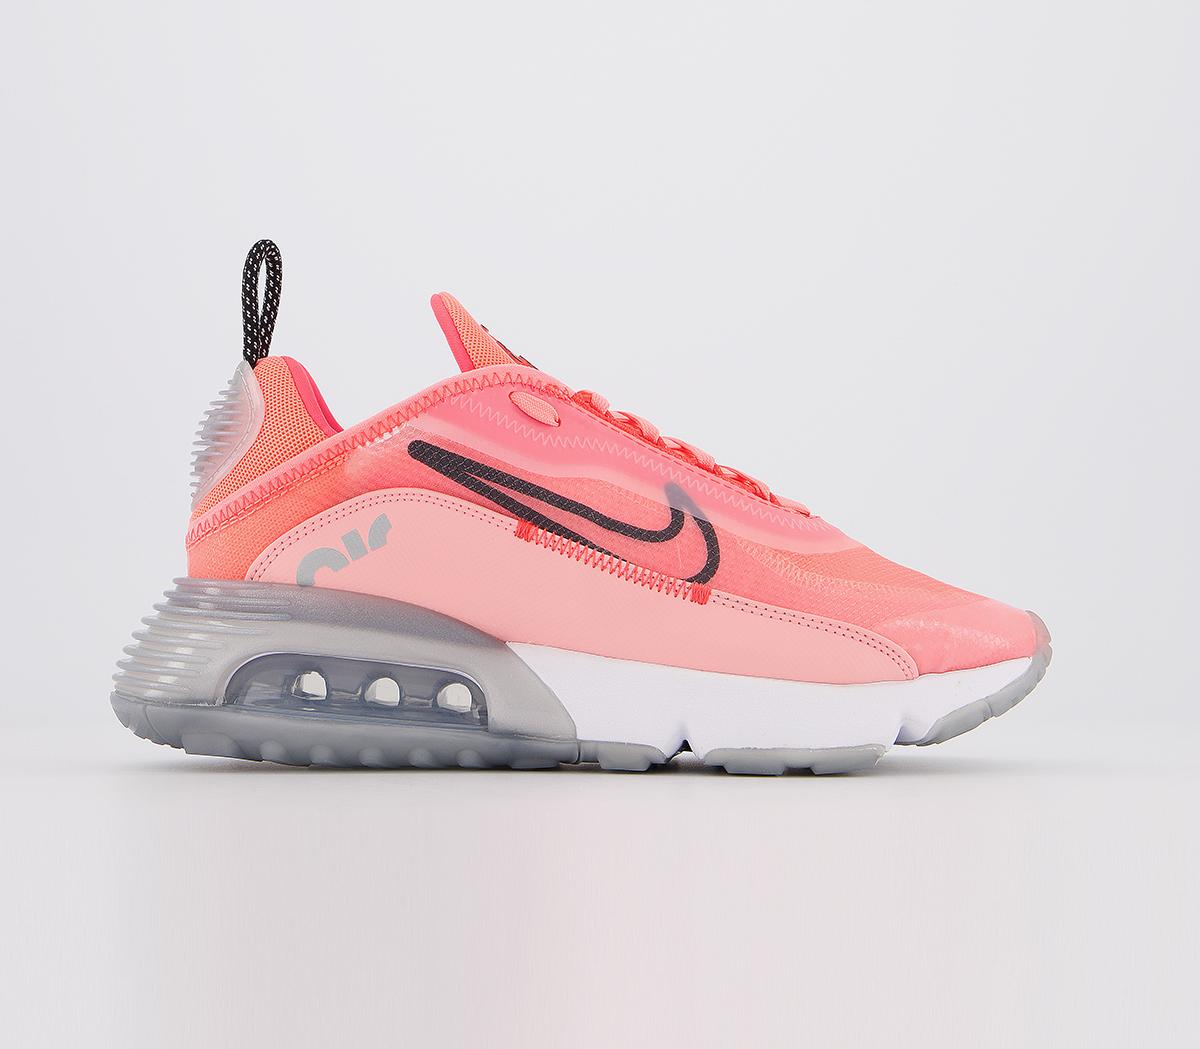 Air Max 2090 Trainers